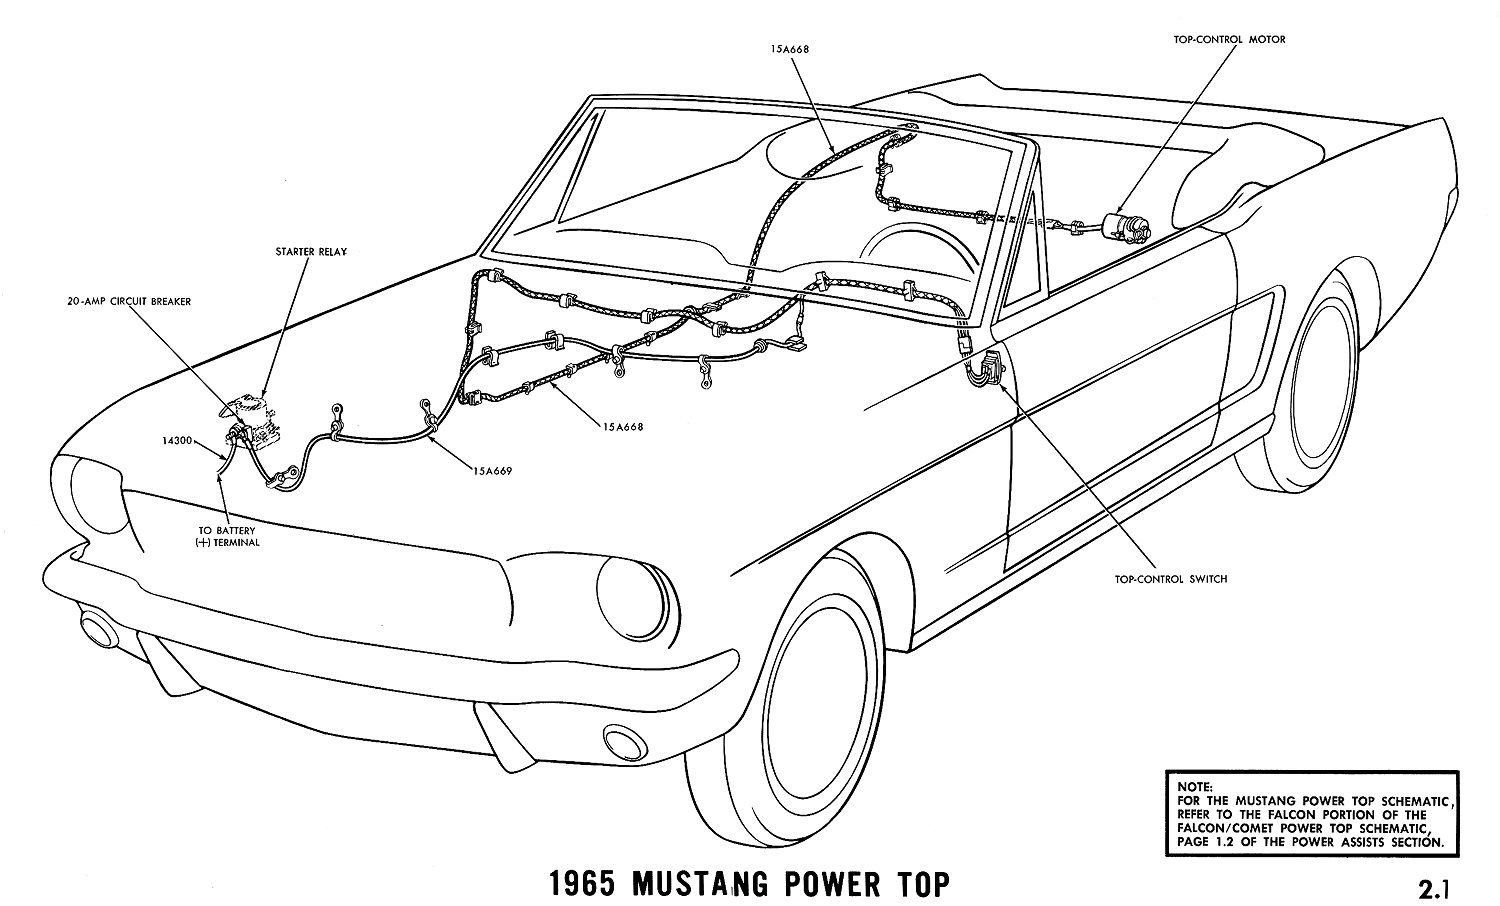 1967 mustang wiring harness diagram 1965 mustang wiring diagrams - average joe restoration 1965 mustang wiring harness diagram #14